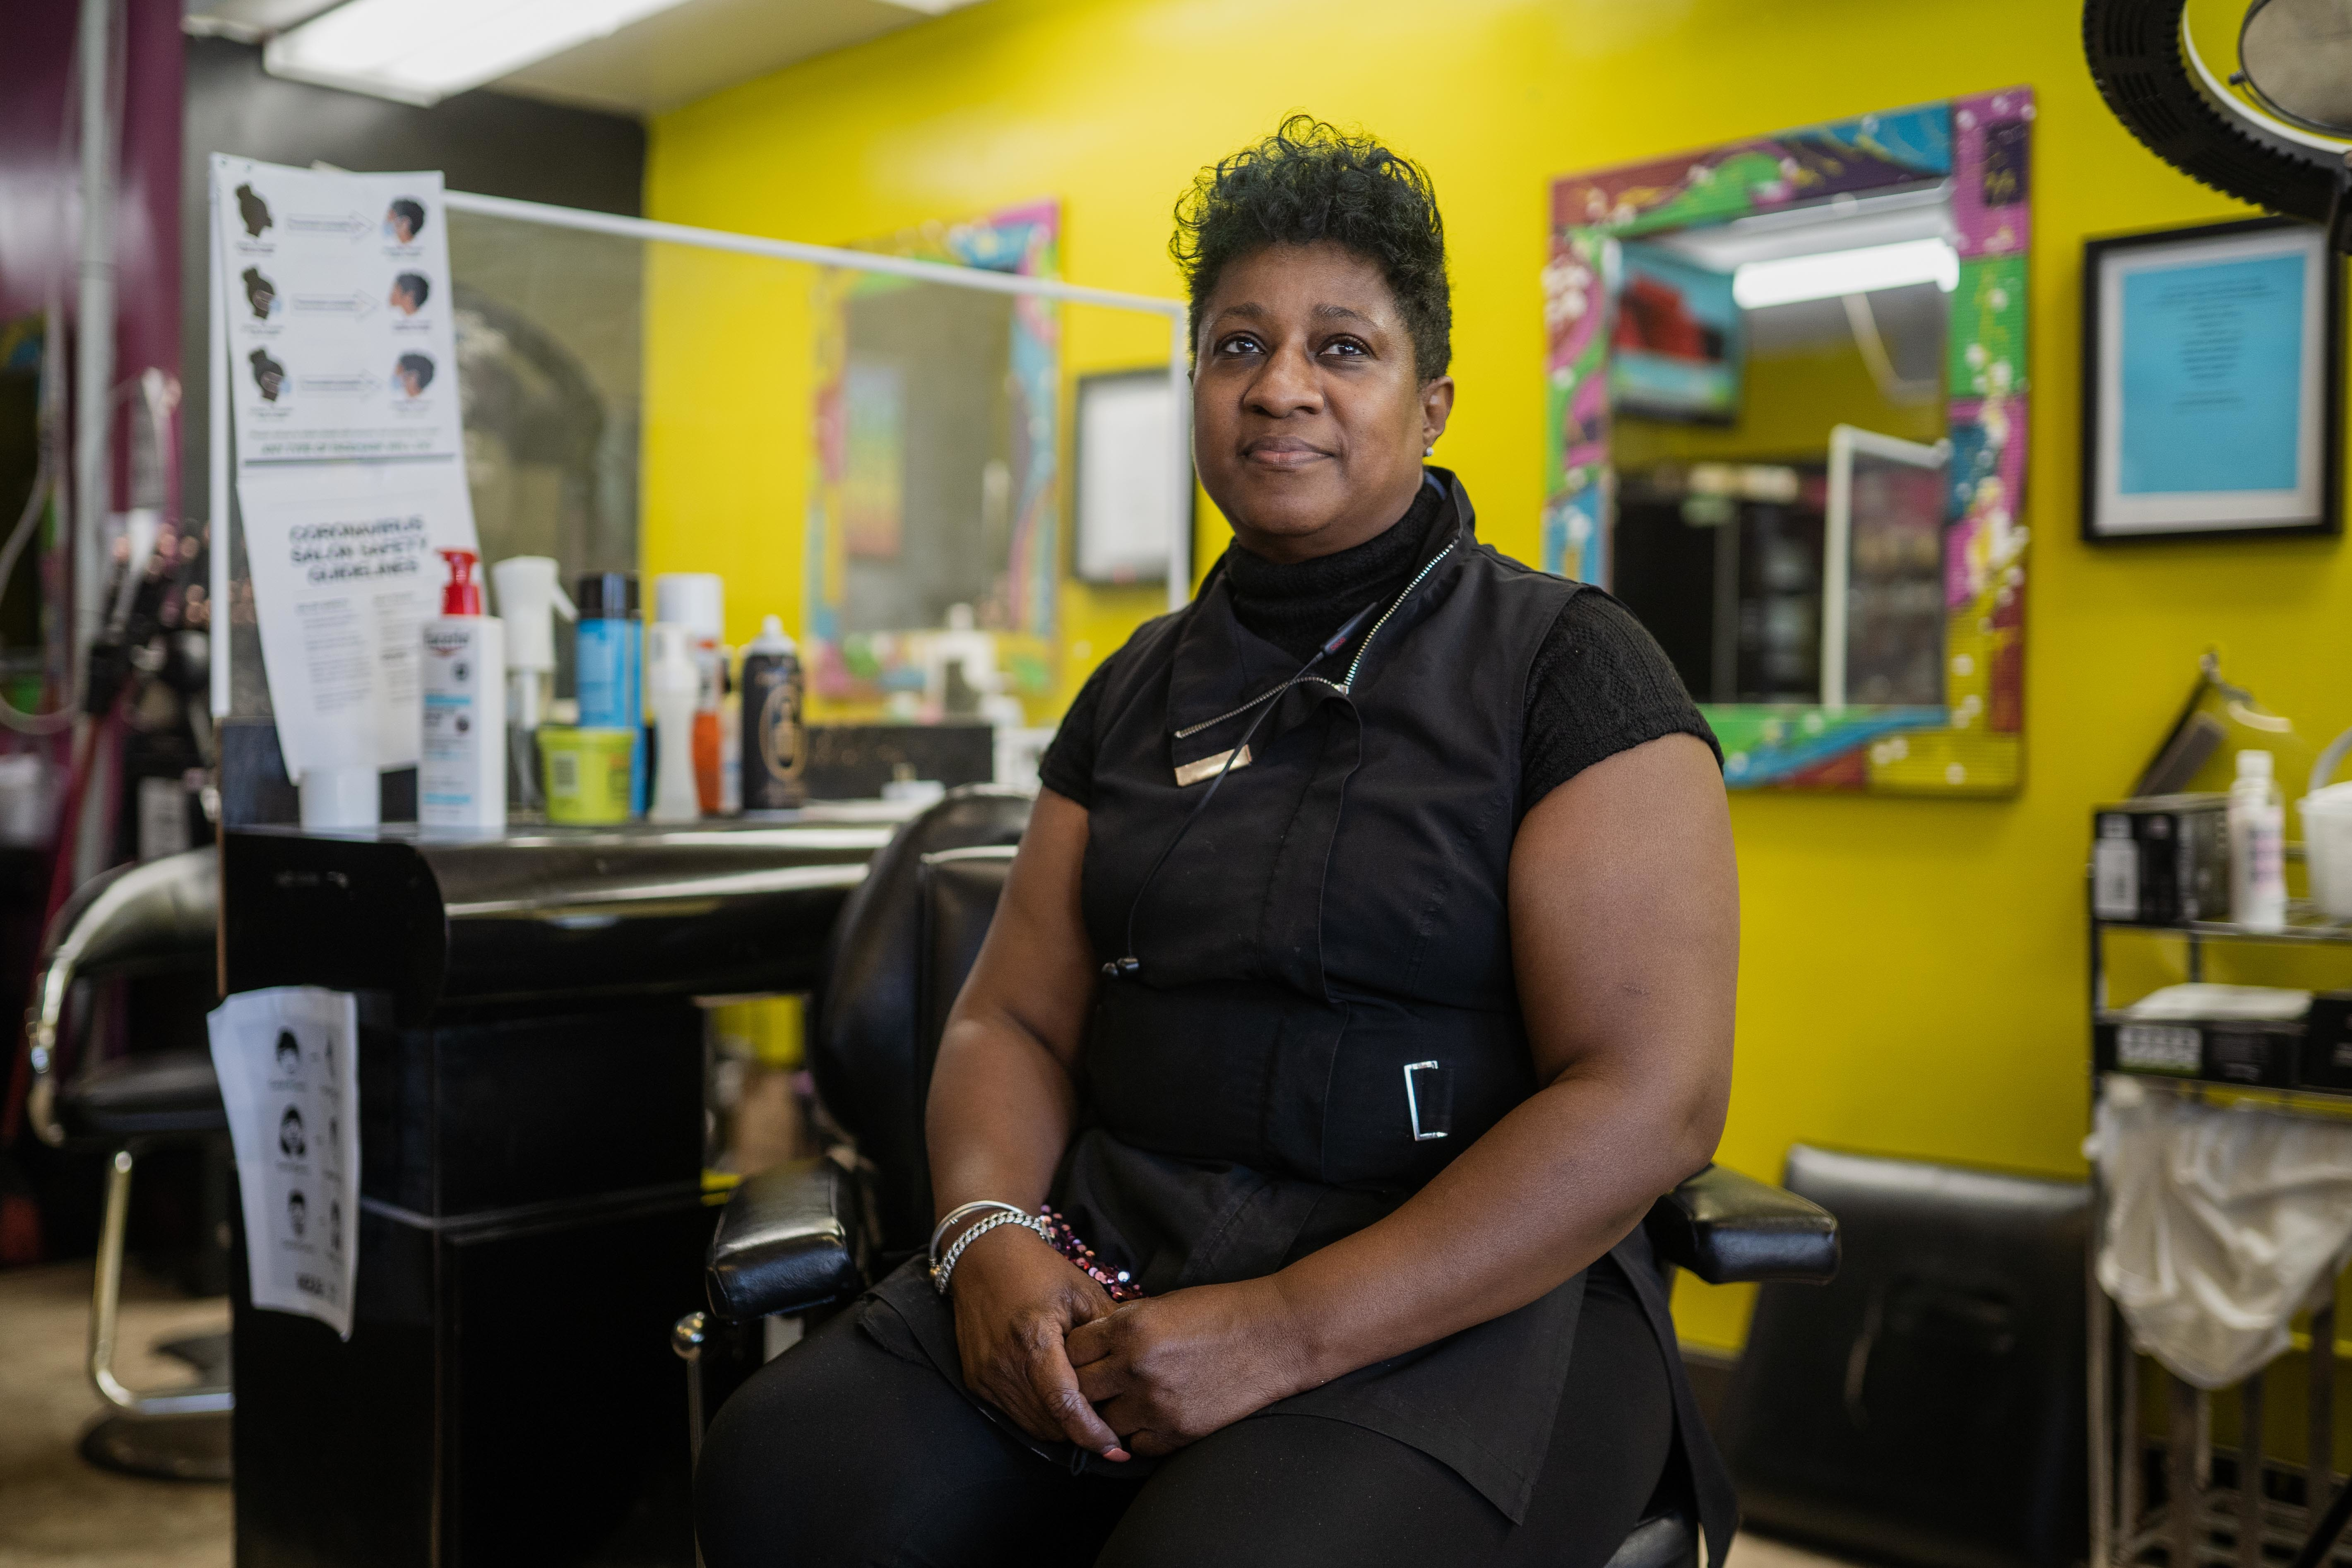 Tess Porter, owner of Tess's Place Style Shop, which was looted after the killing of George Floyd in Minneapolis in 2020, stands inside her salon in the West Englewood neighborhood a year later.